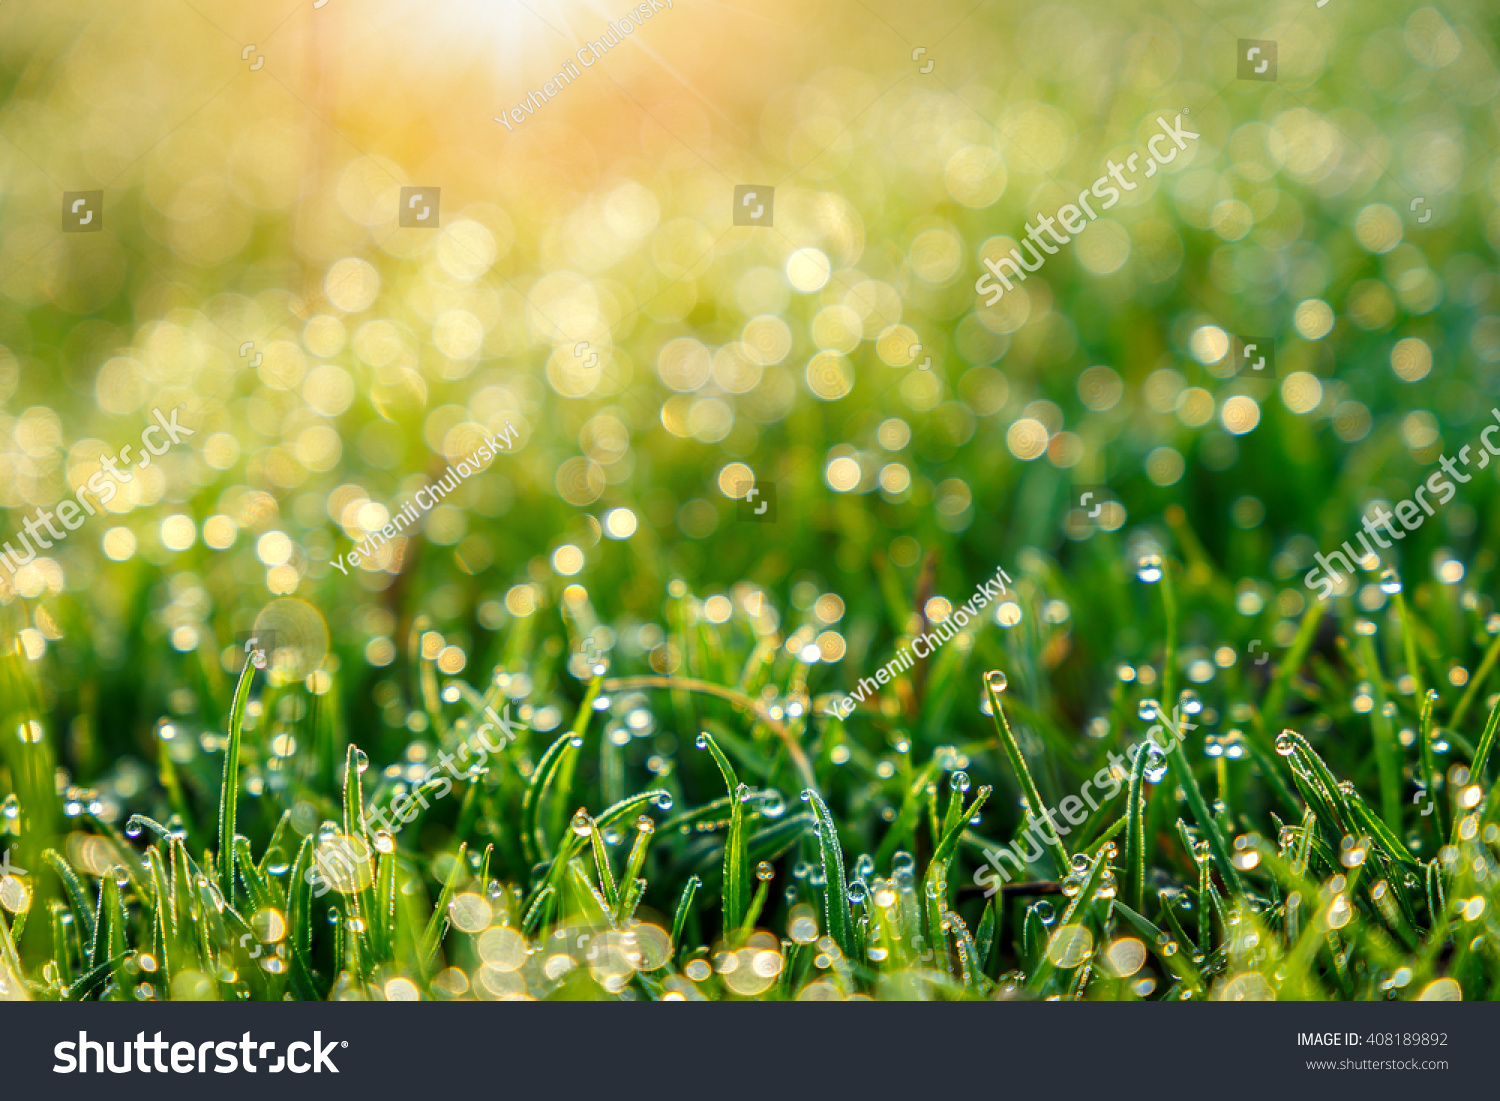 Bright vibrant green grass close-up. Abstract natural background ...